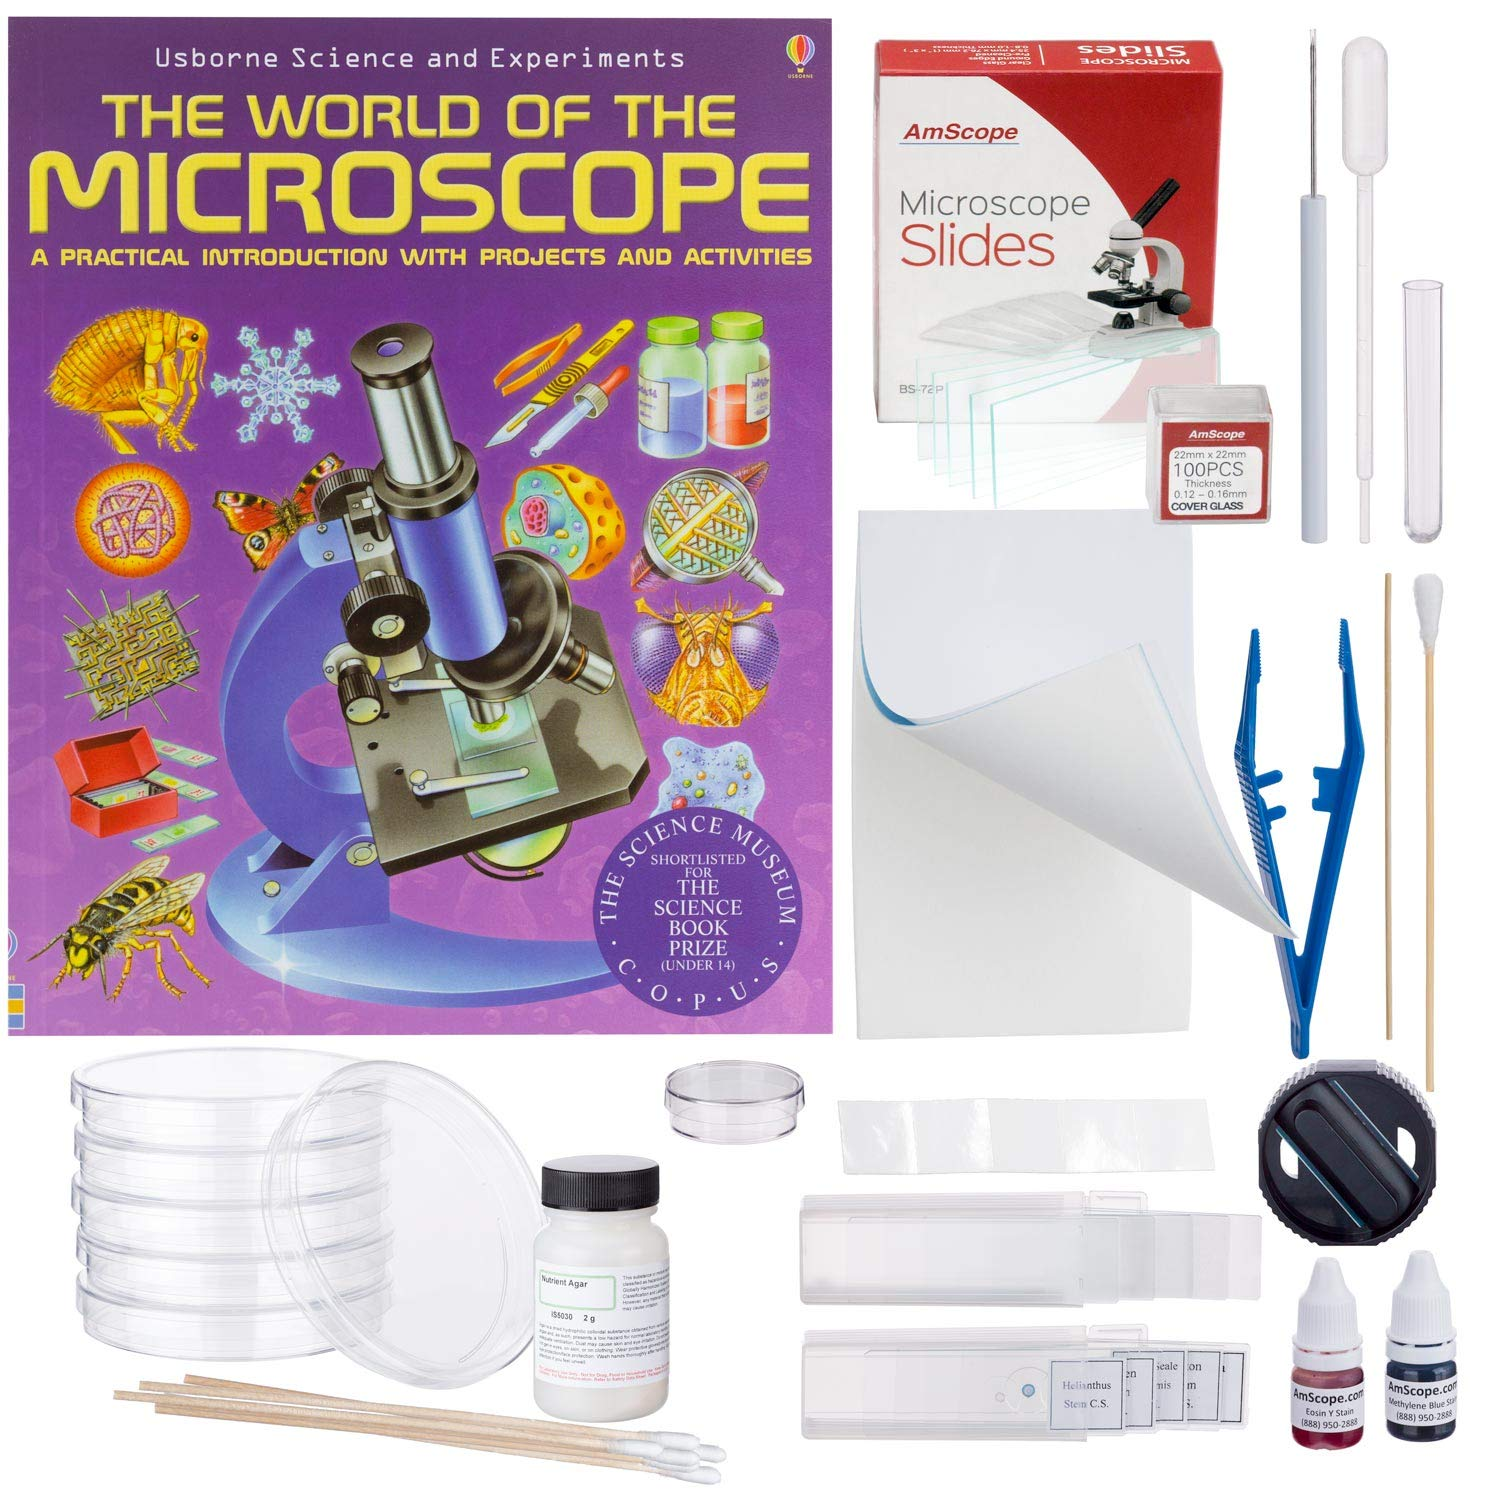 AmScope Compound Microscope Accessory and Book Kit: Preparation and Culturing by AmScope